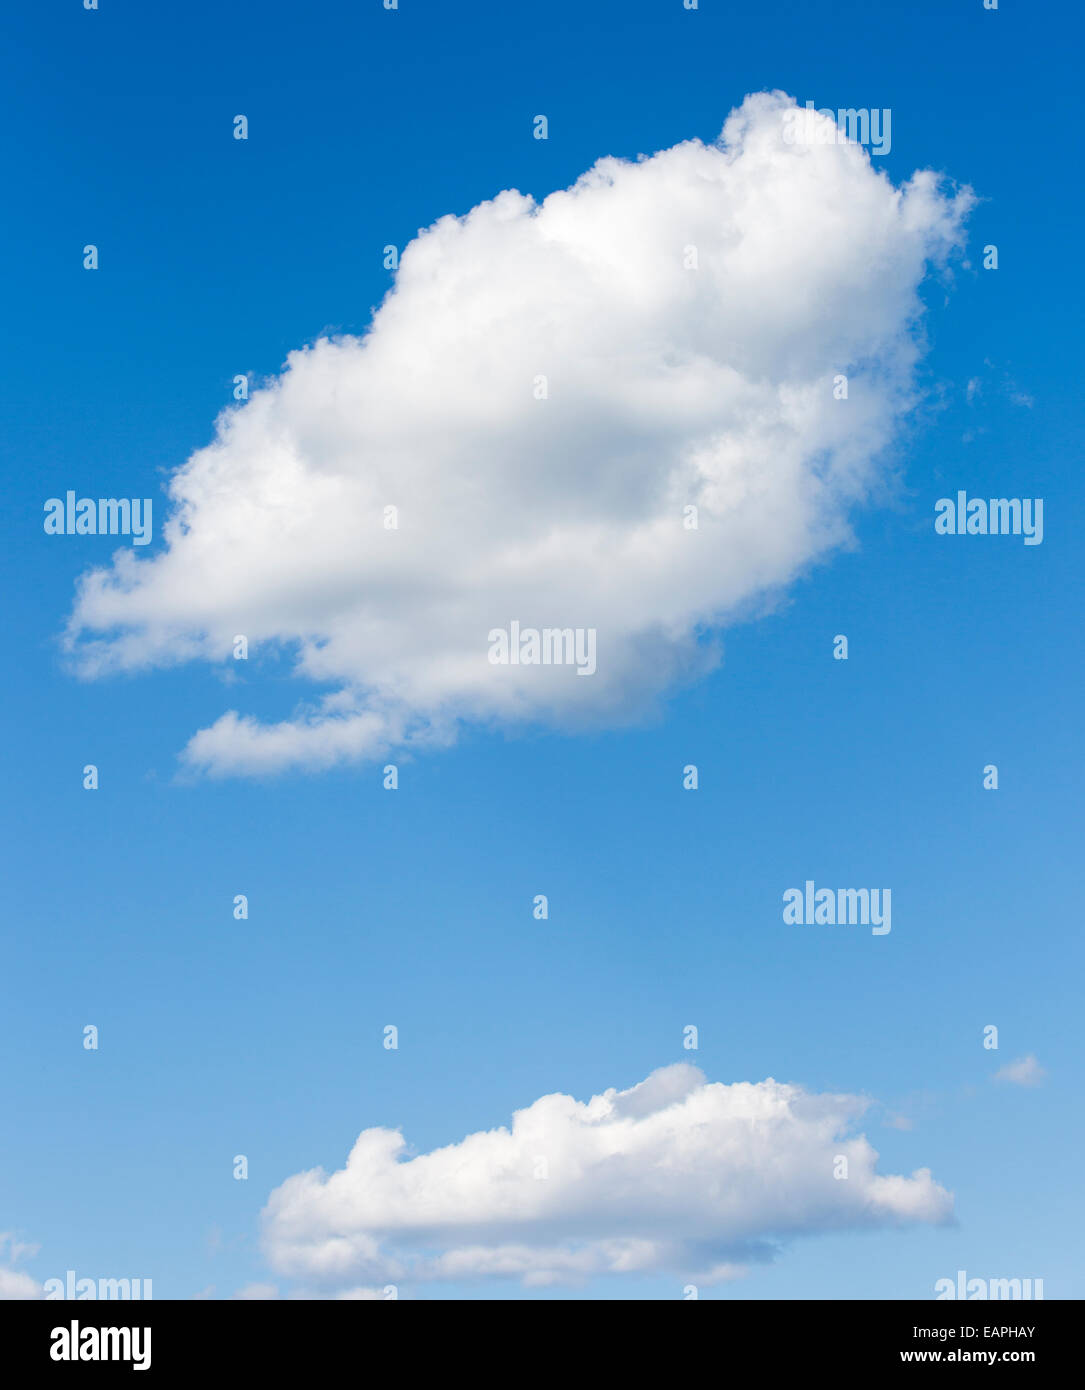 Two white clouds on blue sky - Stock Image